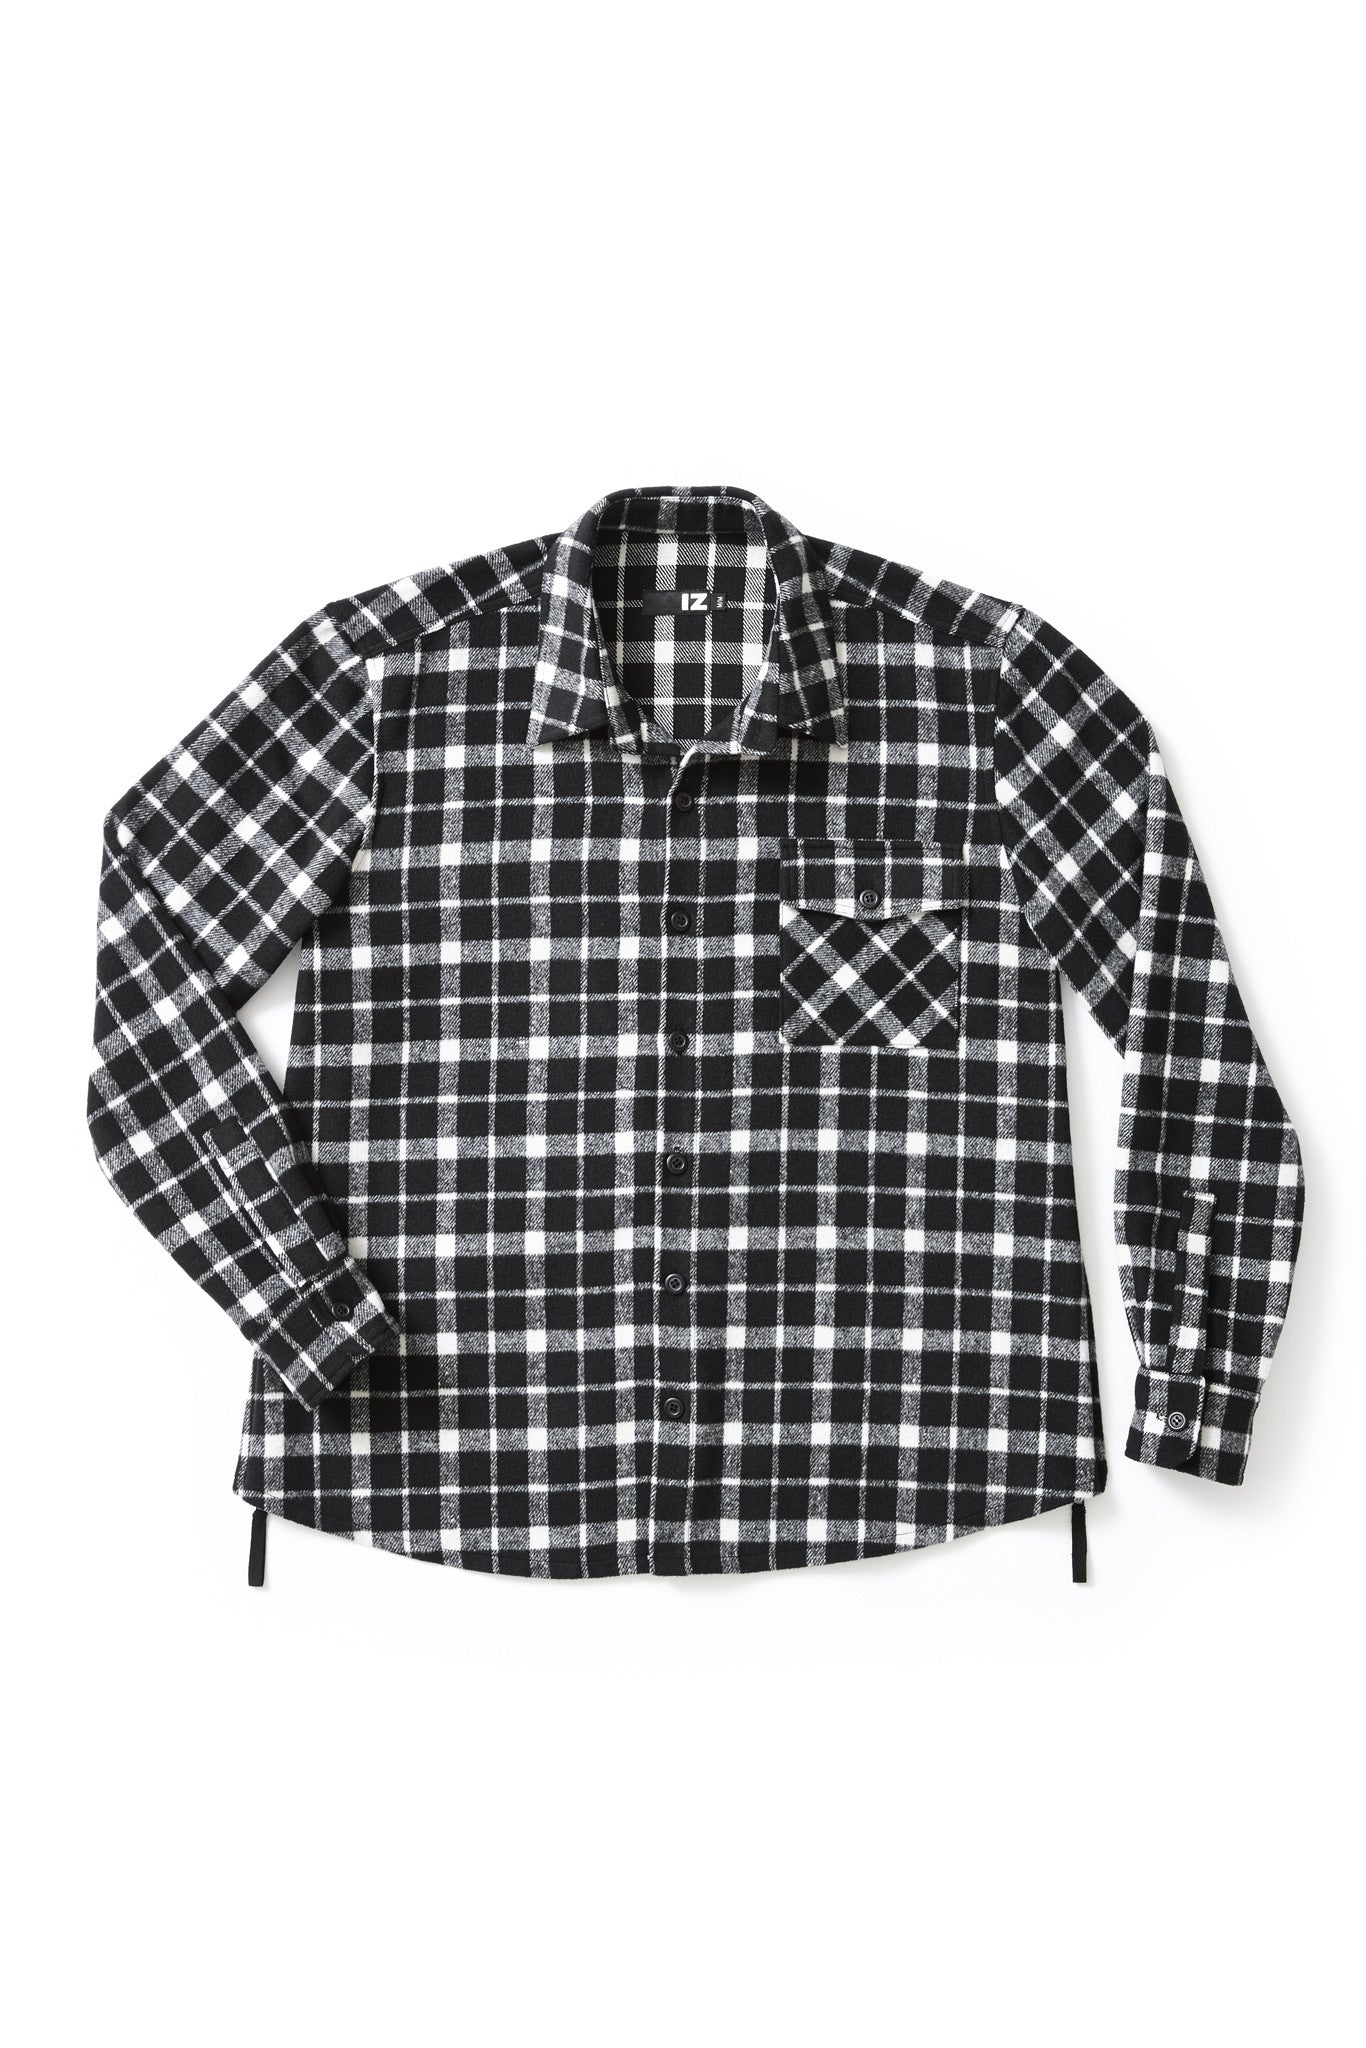 Heavyweight Plaid Shirt - Not your average disability clothing.